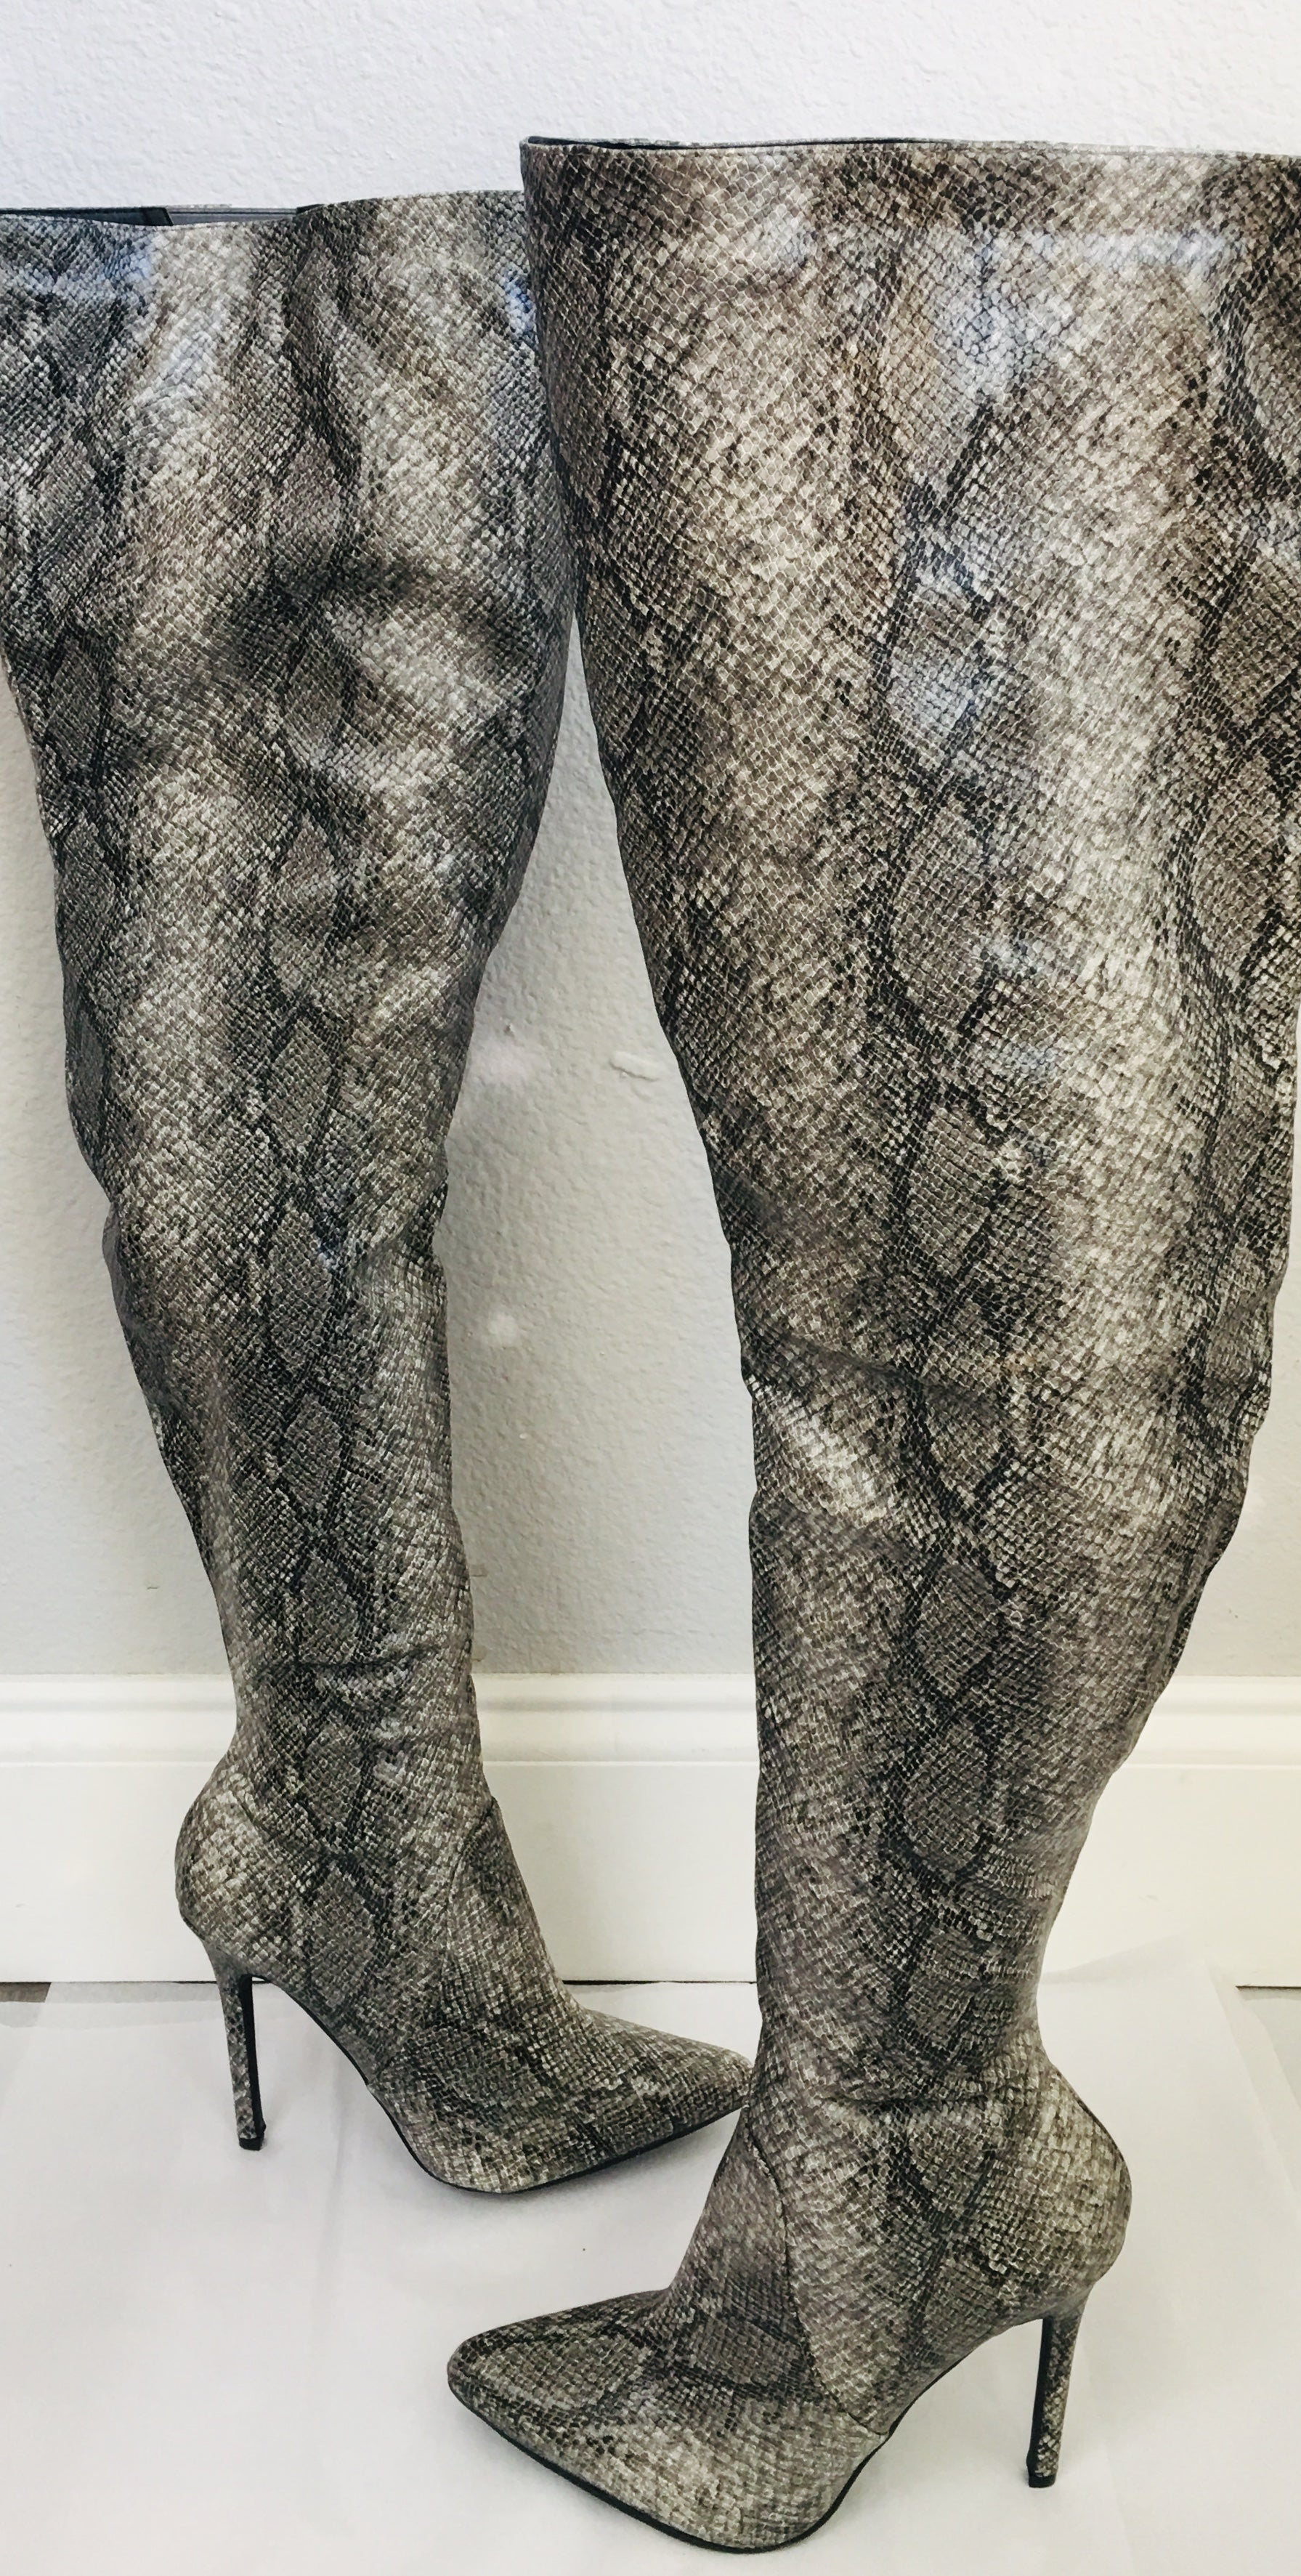 Mark and Muddux Thigh High Boots - Vanity's Vault